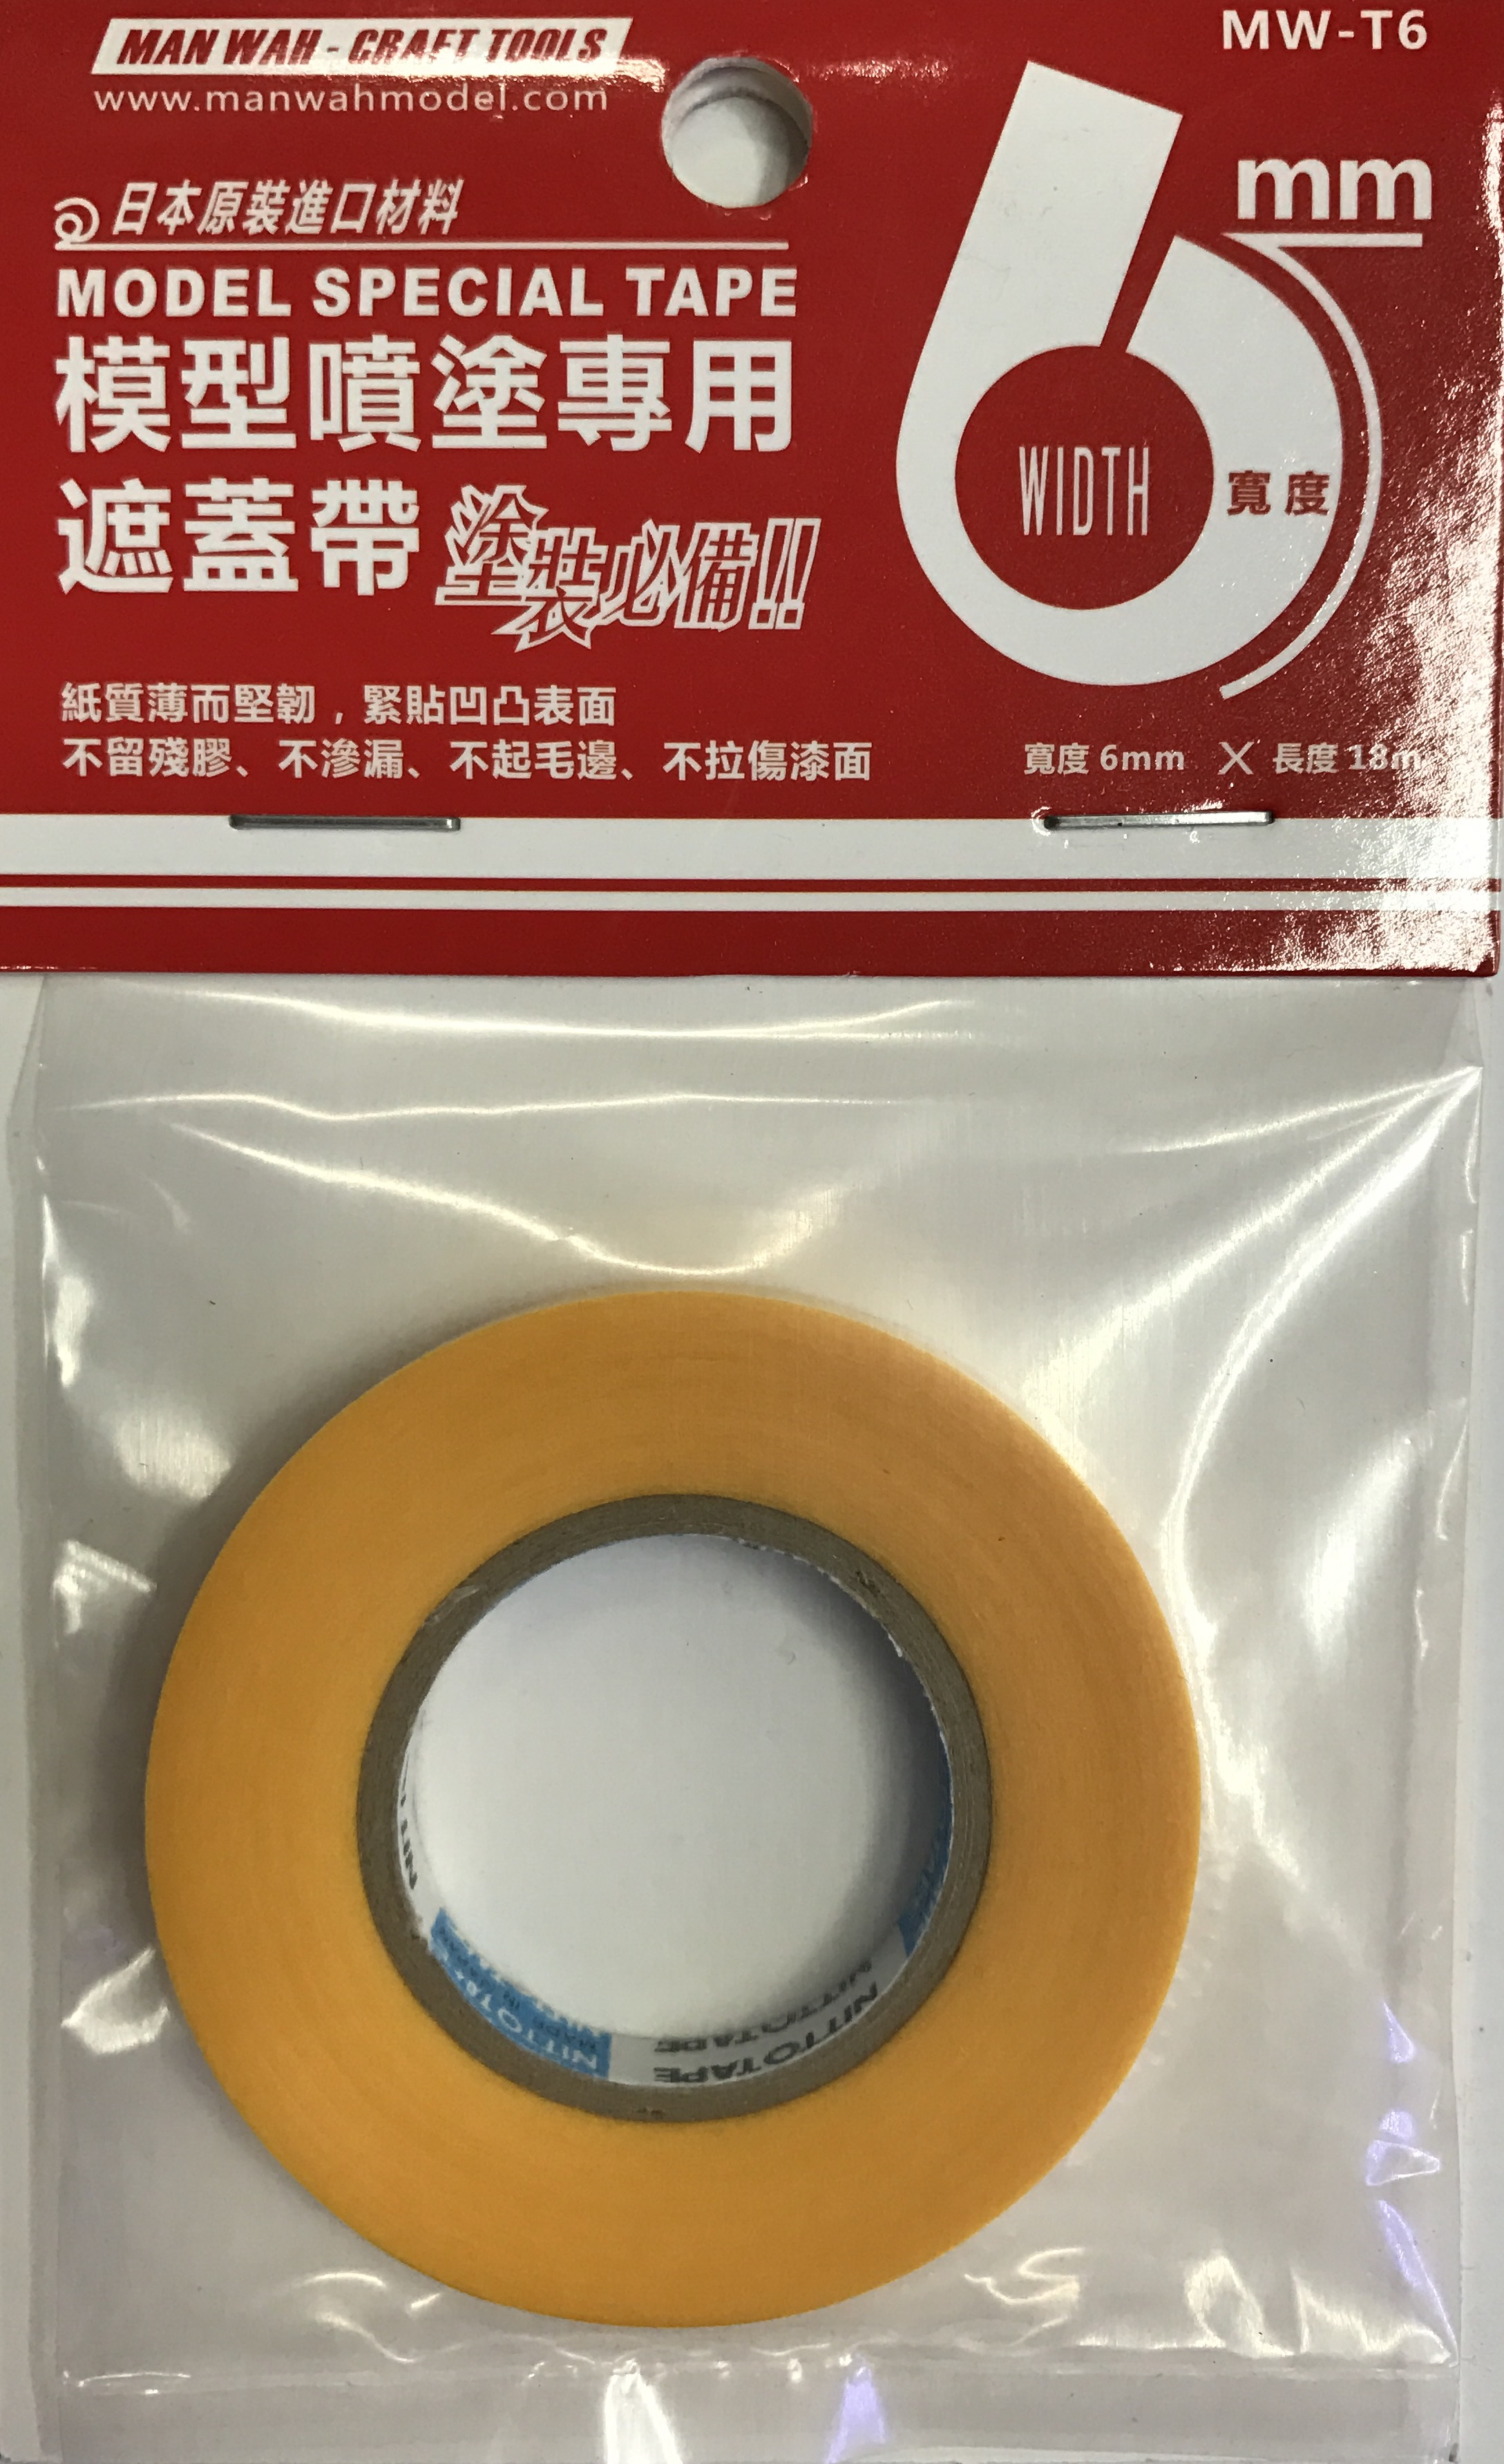 Model Special Tape 6mm [ManWah]